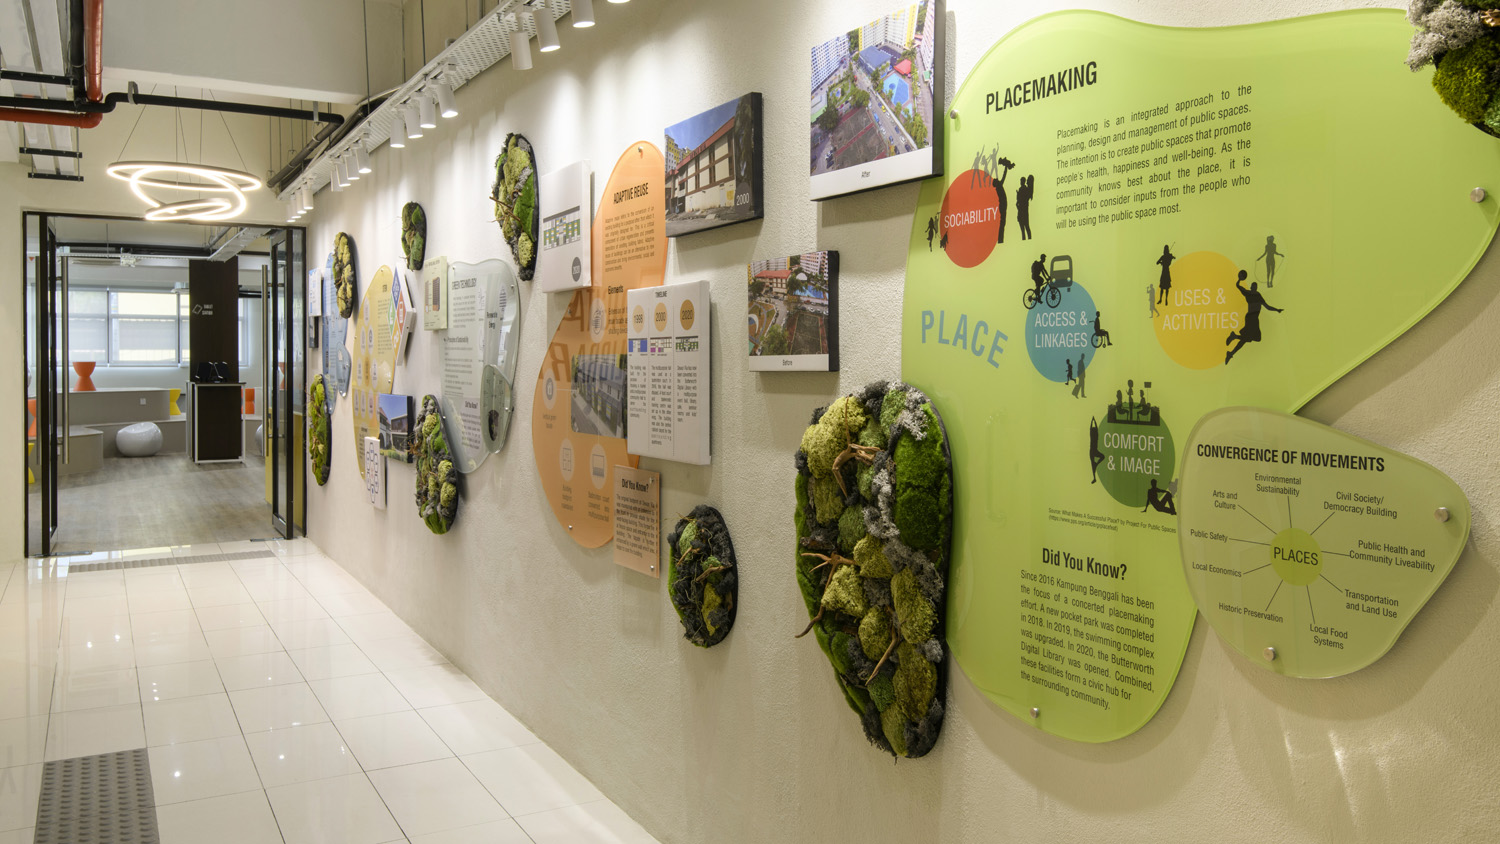 A gallery wall describes the processes in the transformation of the library and the philosophies of adaptive reuse